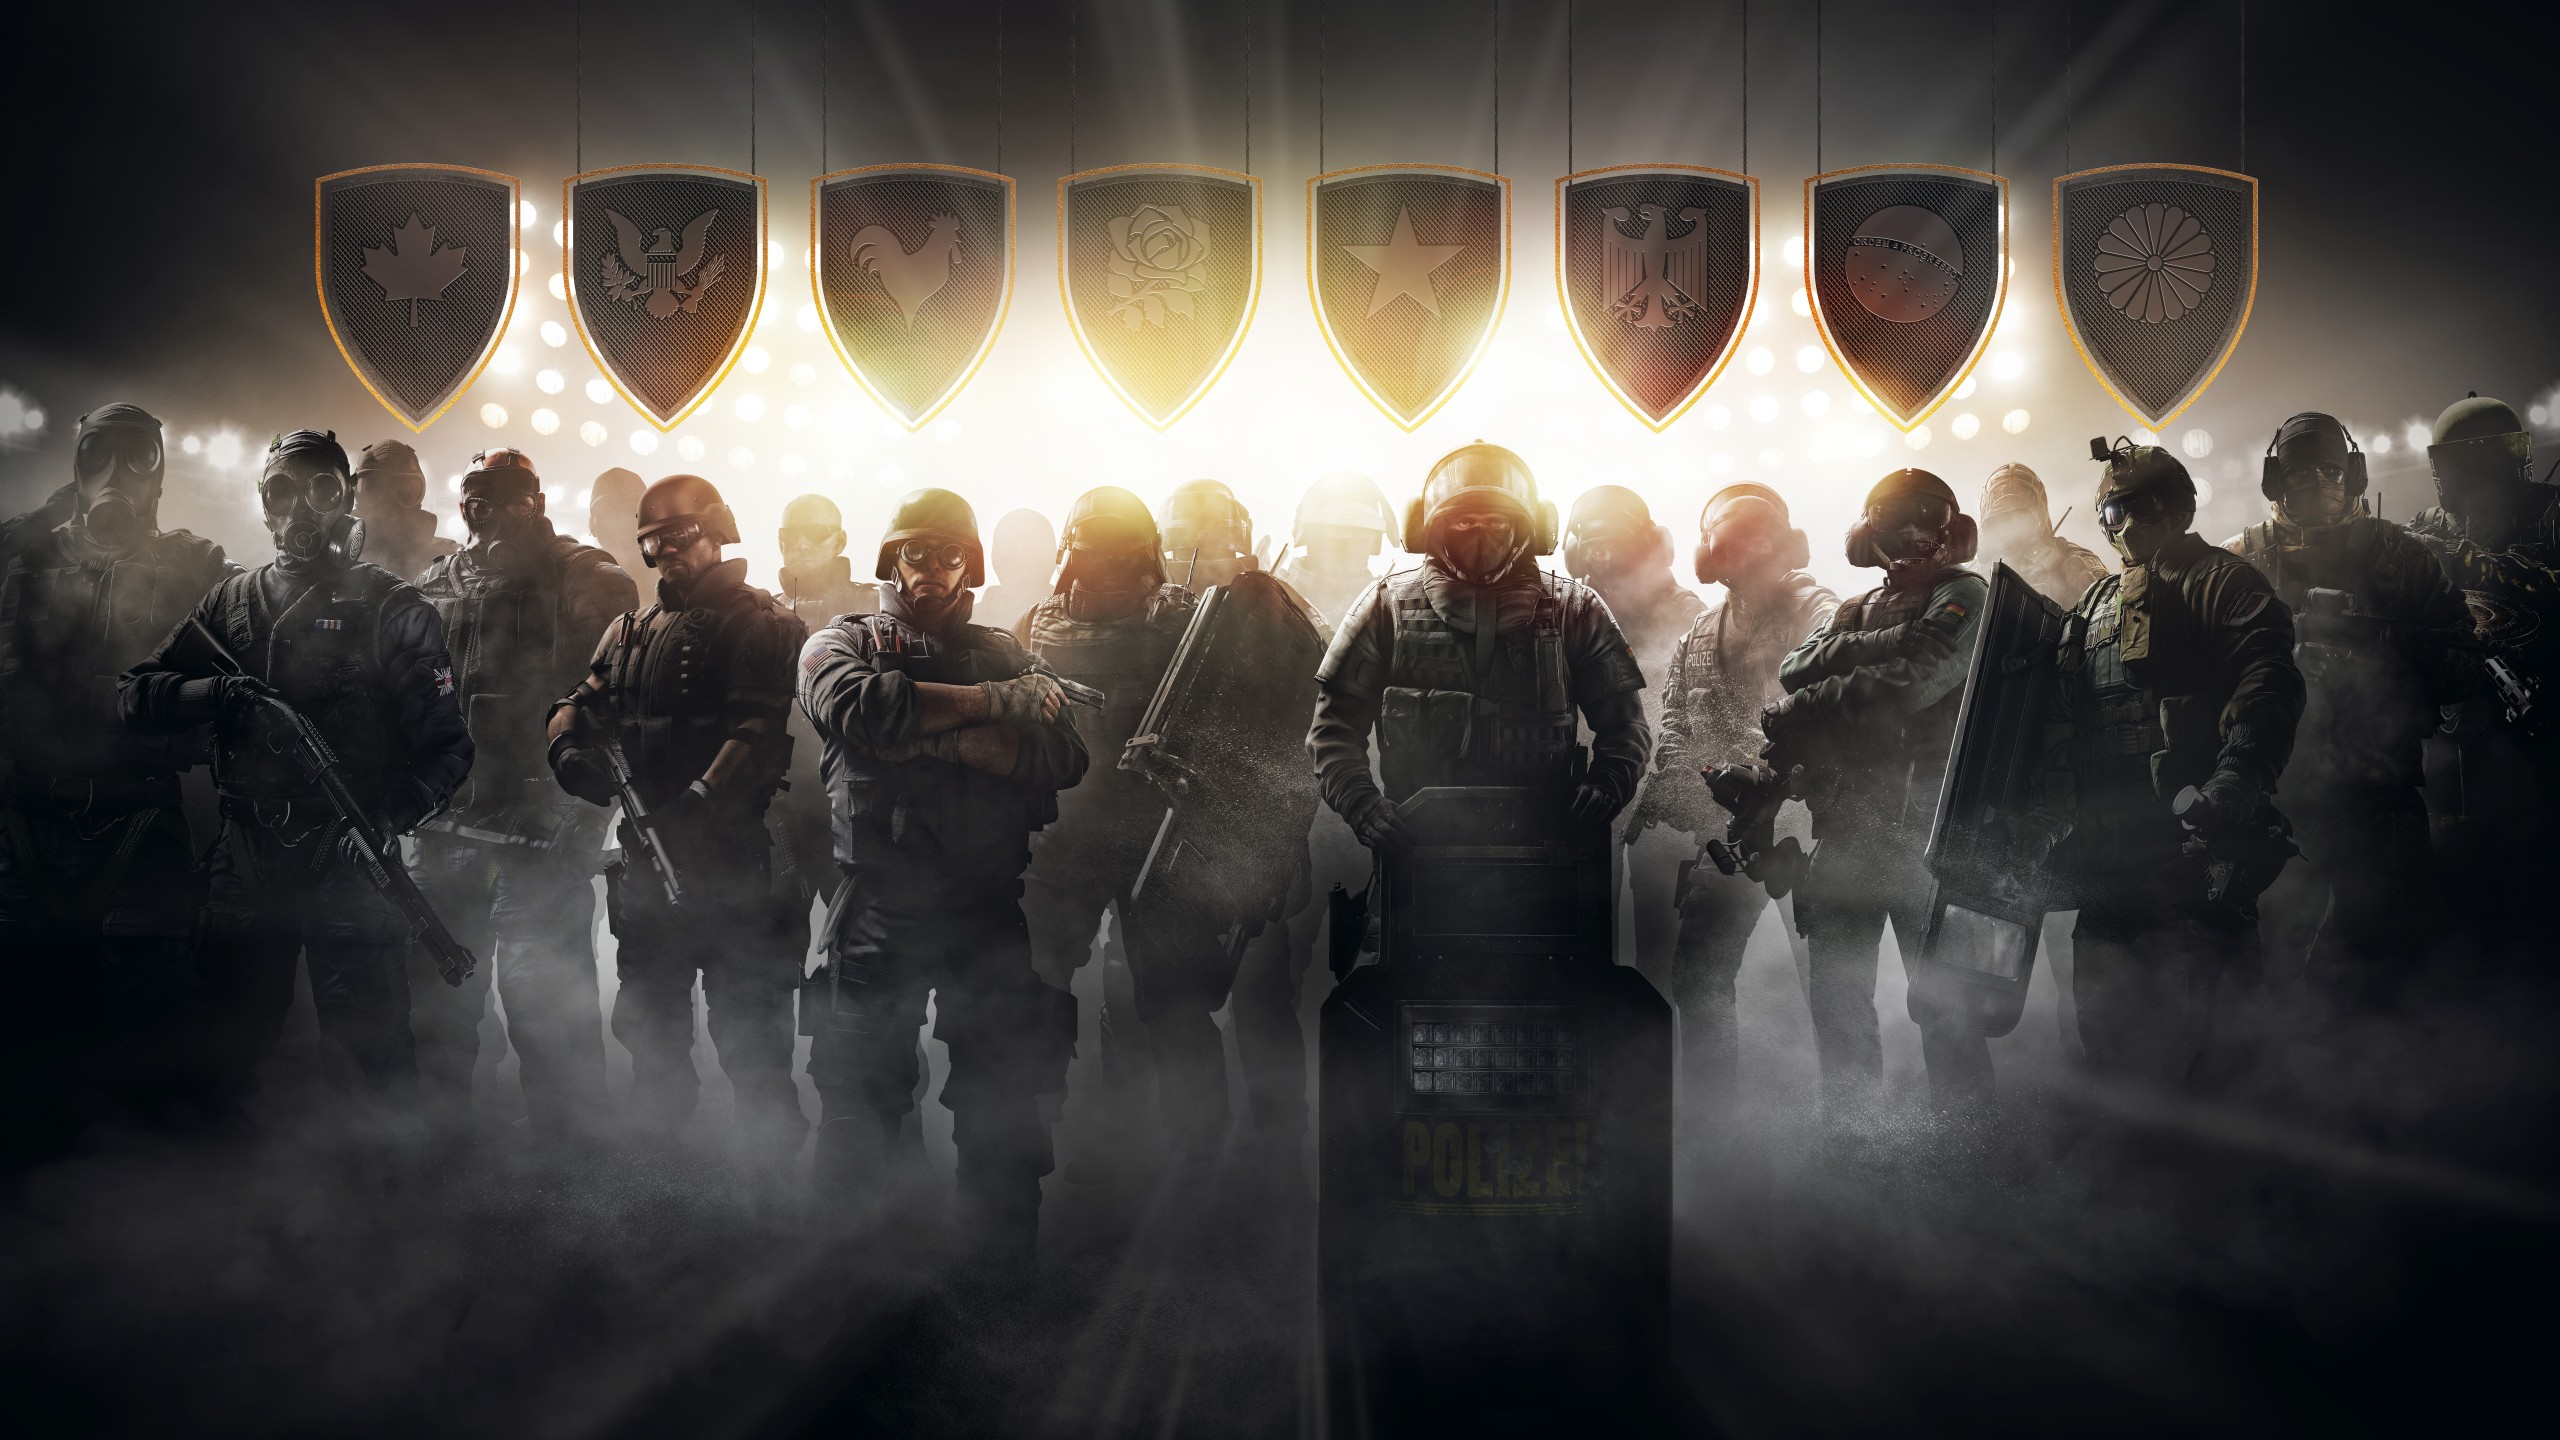 3d Wallpaper For Ipad Pro Tom Clancy S Rainbow Six Siege Pro League Wallpapers Hd